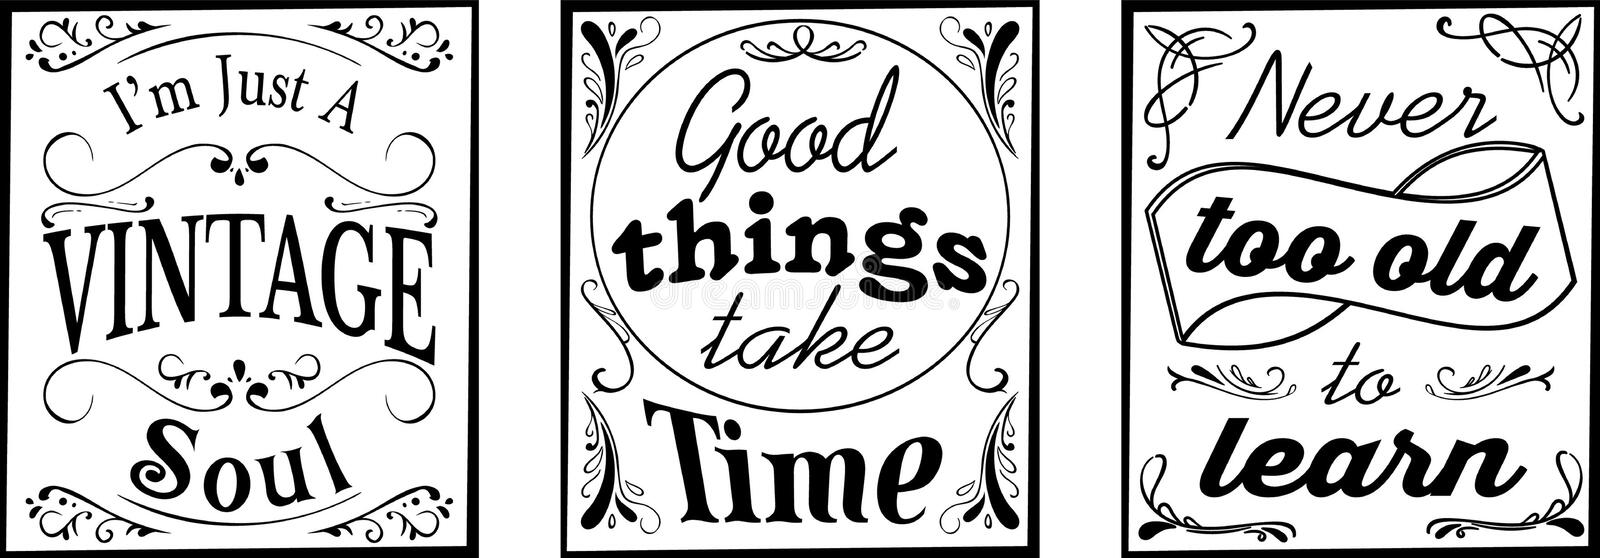 3 typographic motivational and inspirational quotes. Set of 3 typographic motivational and inspirational quotes. I`m just a vintage soul. Good things take time stock illustration